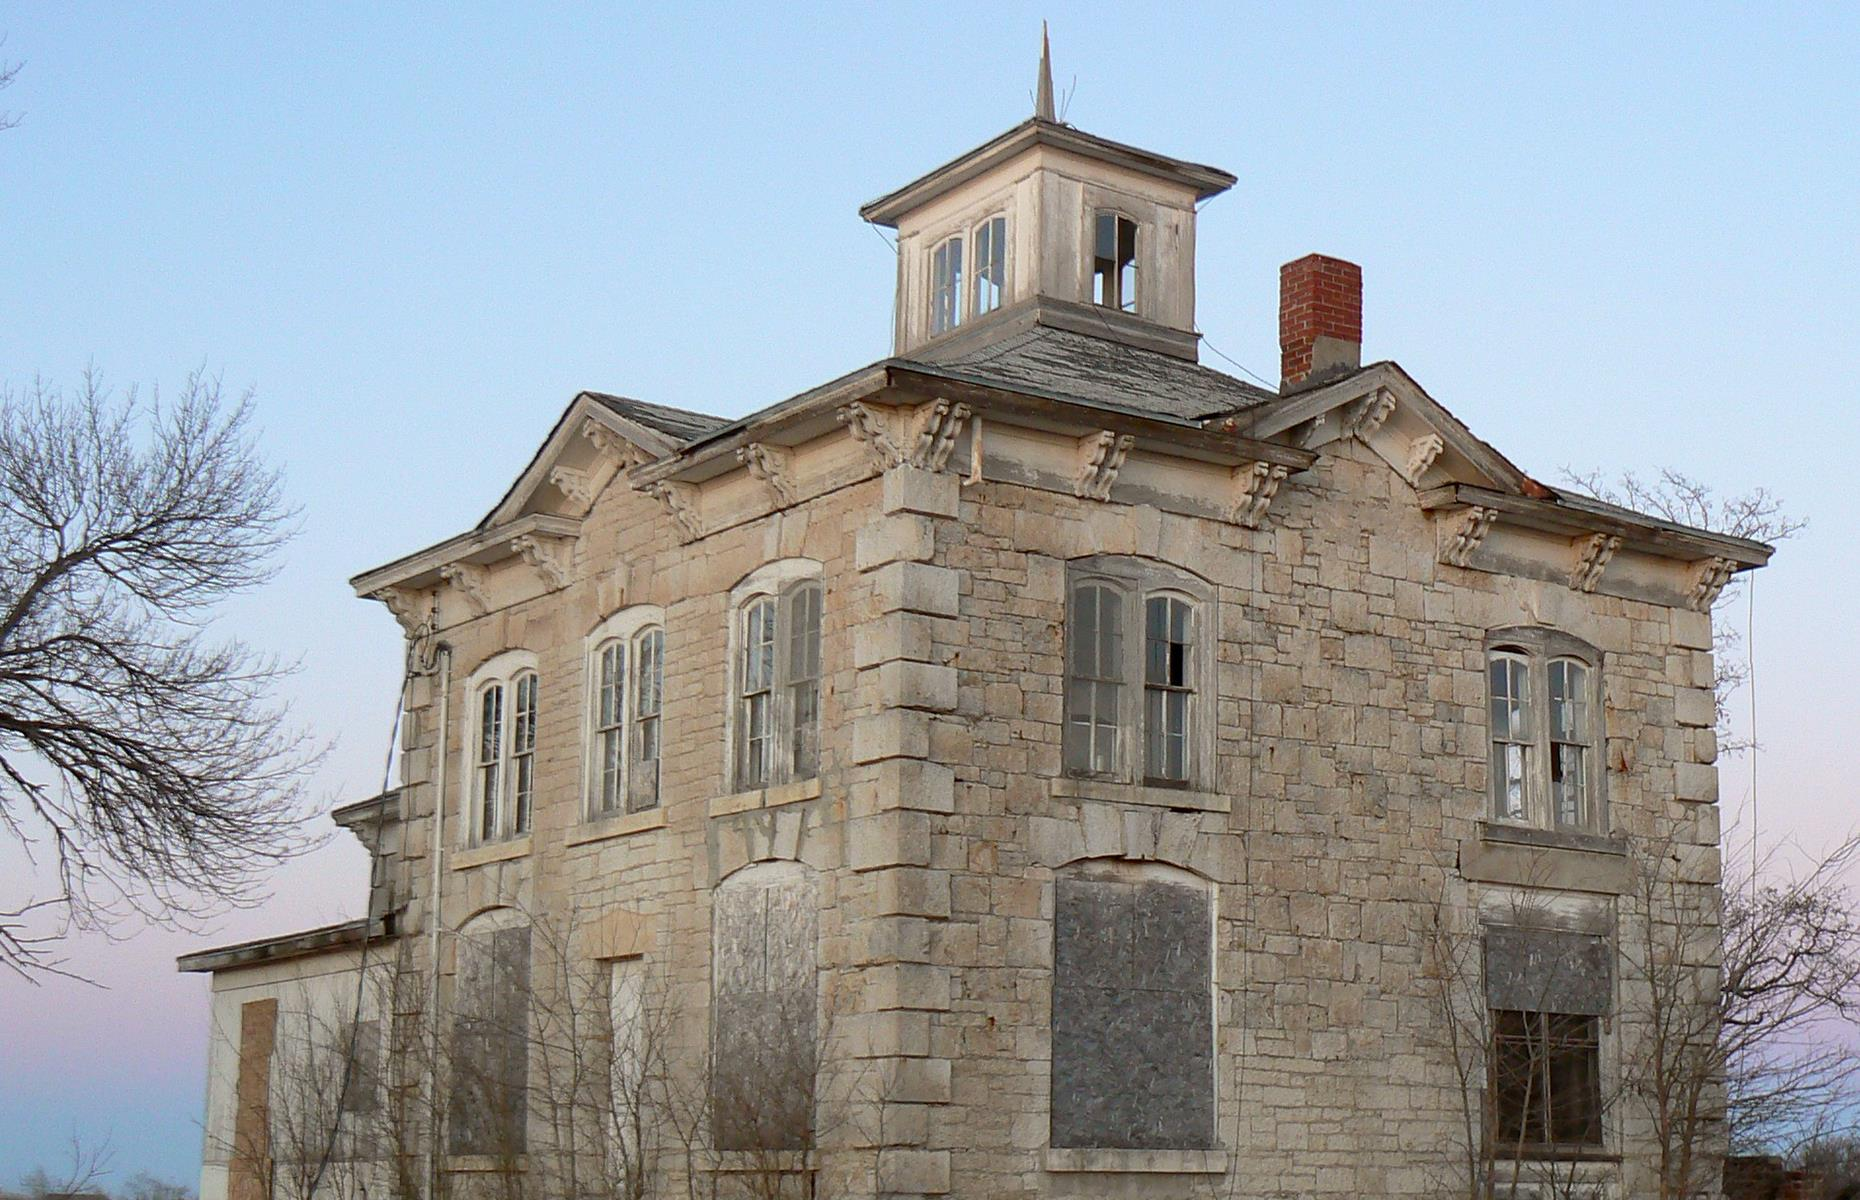 Slide 54 of 101: This abandoned house near Ashland dates back to 1874 and is one of the finest examples of Italianate architecture in Nebraska, with its striking cupola, bracketed cornice and hand-chiseled stone.